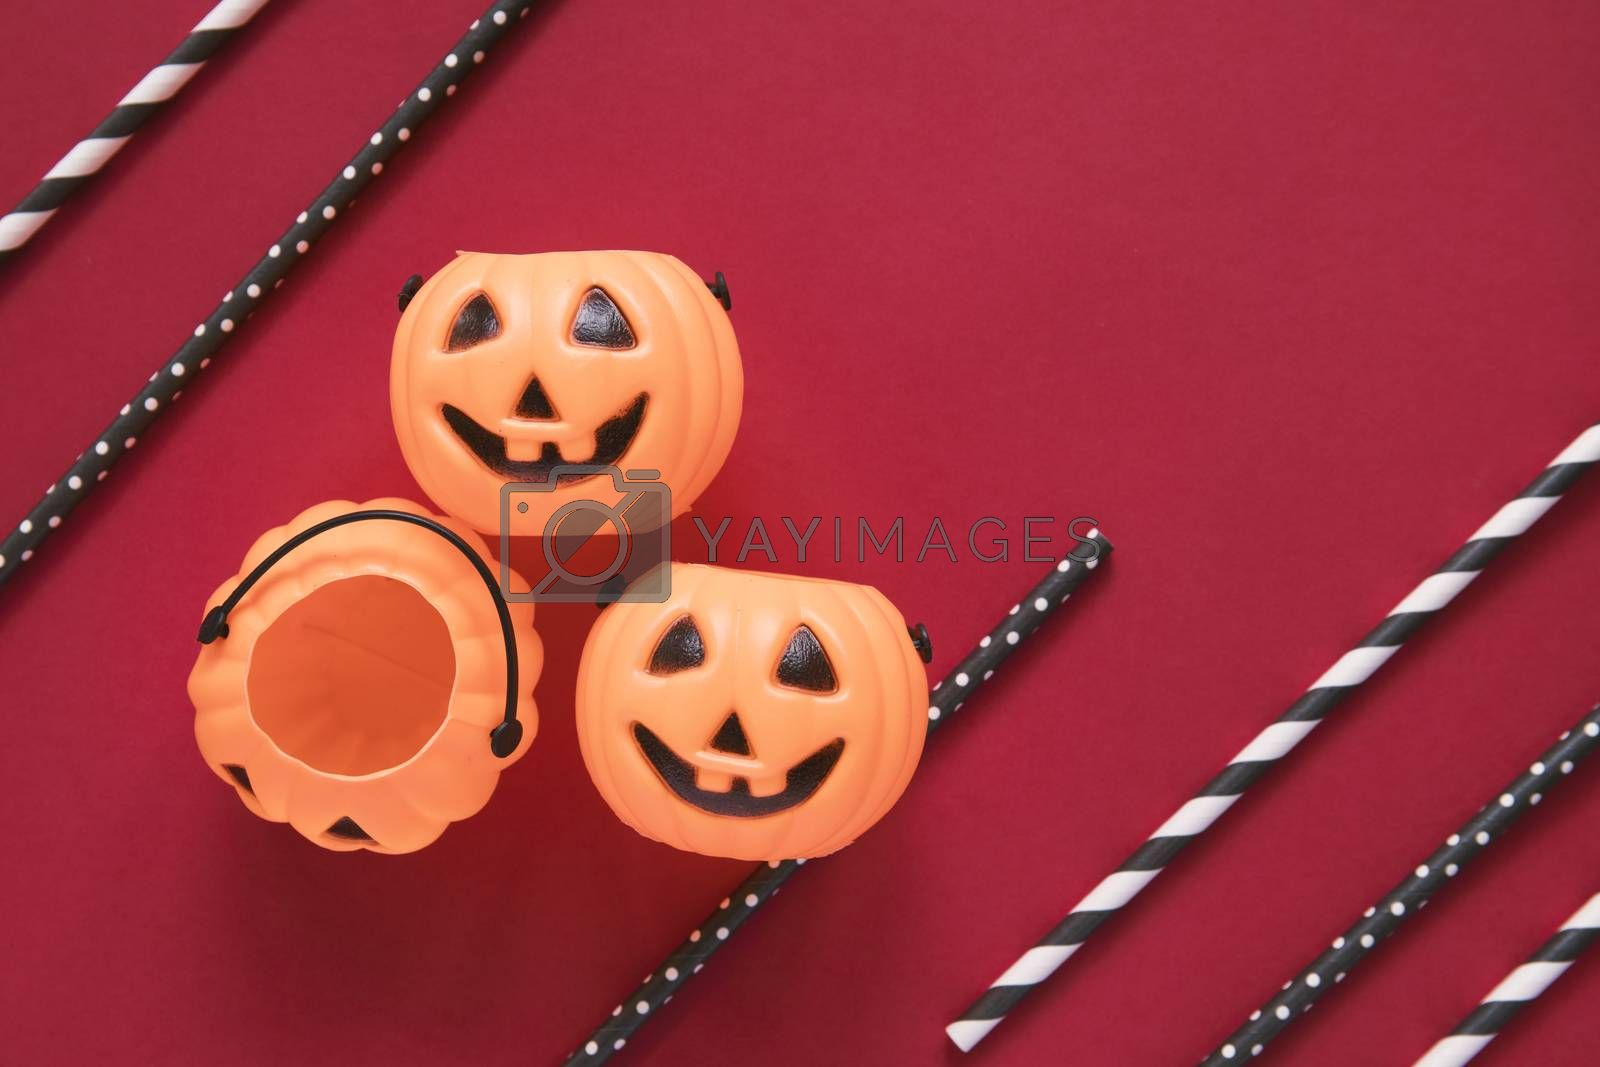 Flat lay style of halloween party concept with decorative pumpkins and black fancy straw on red background, copy space